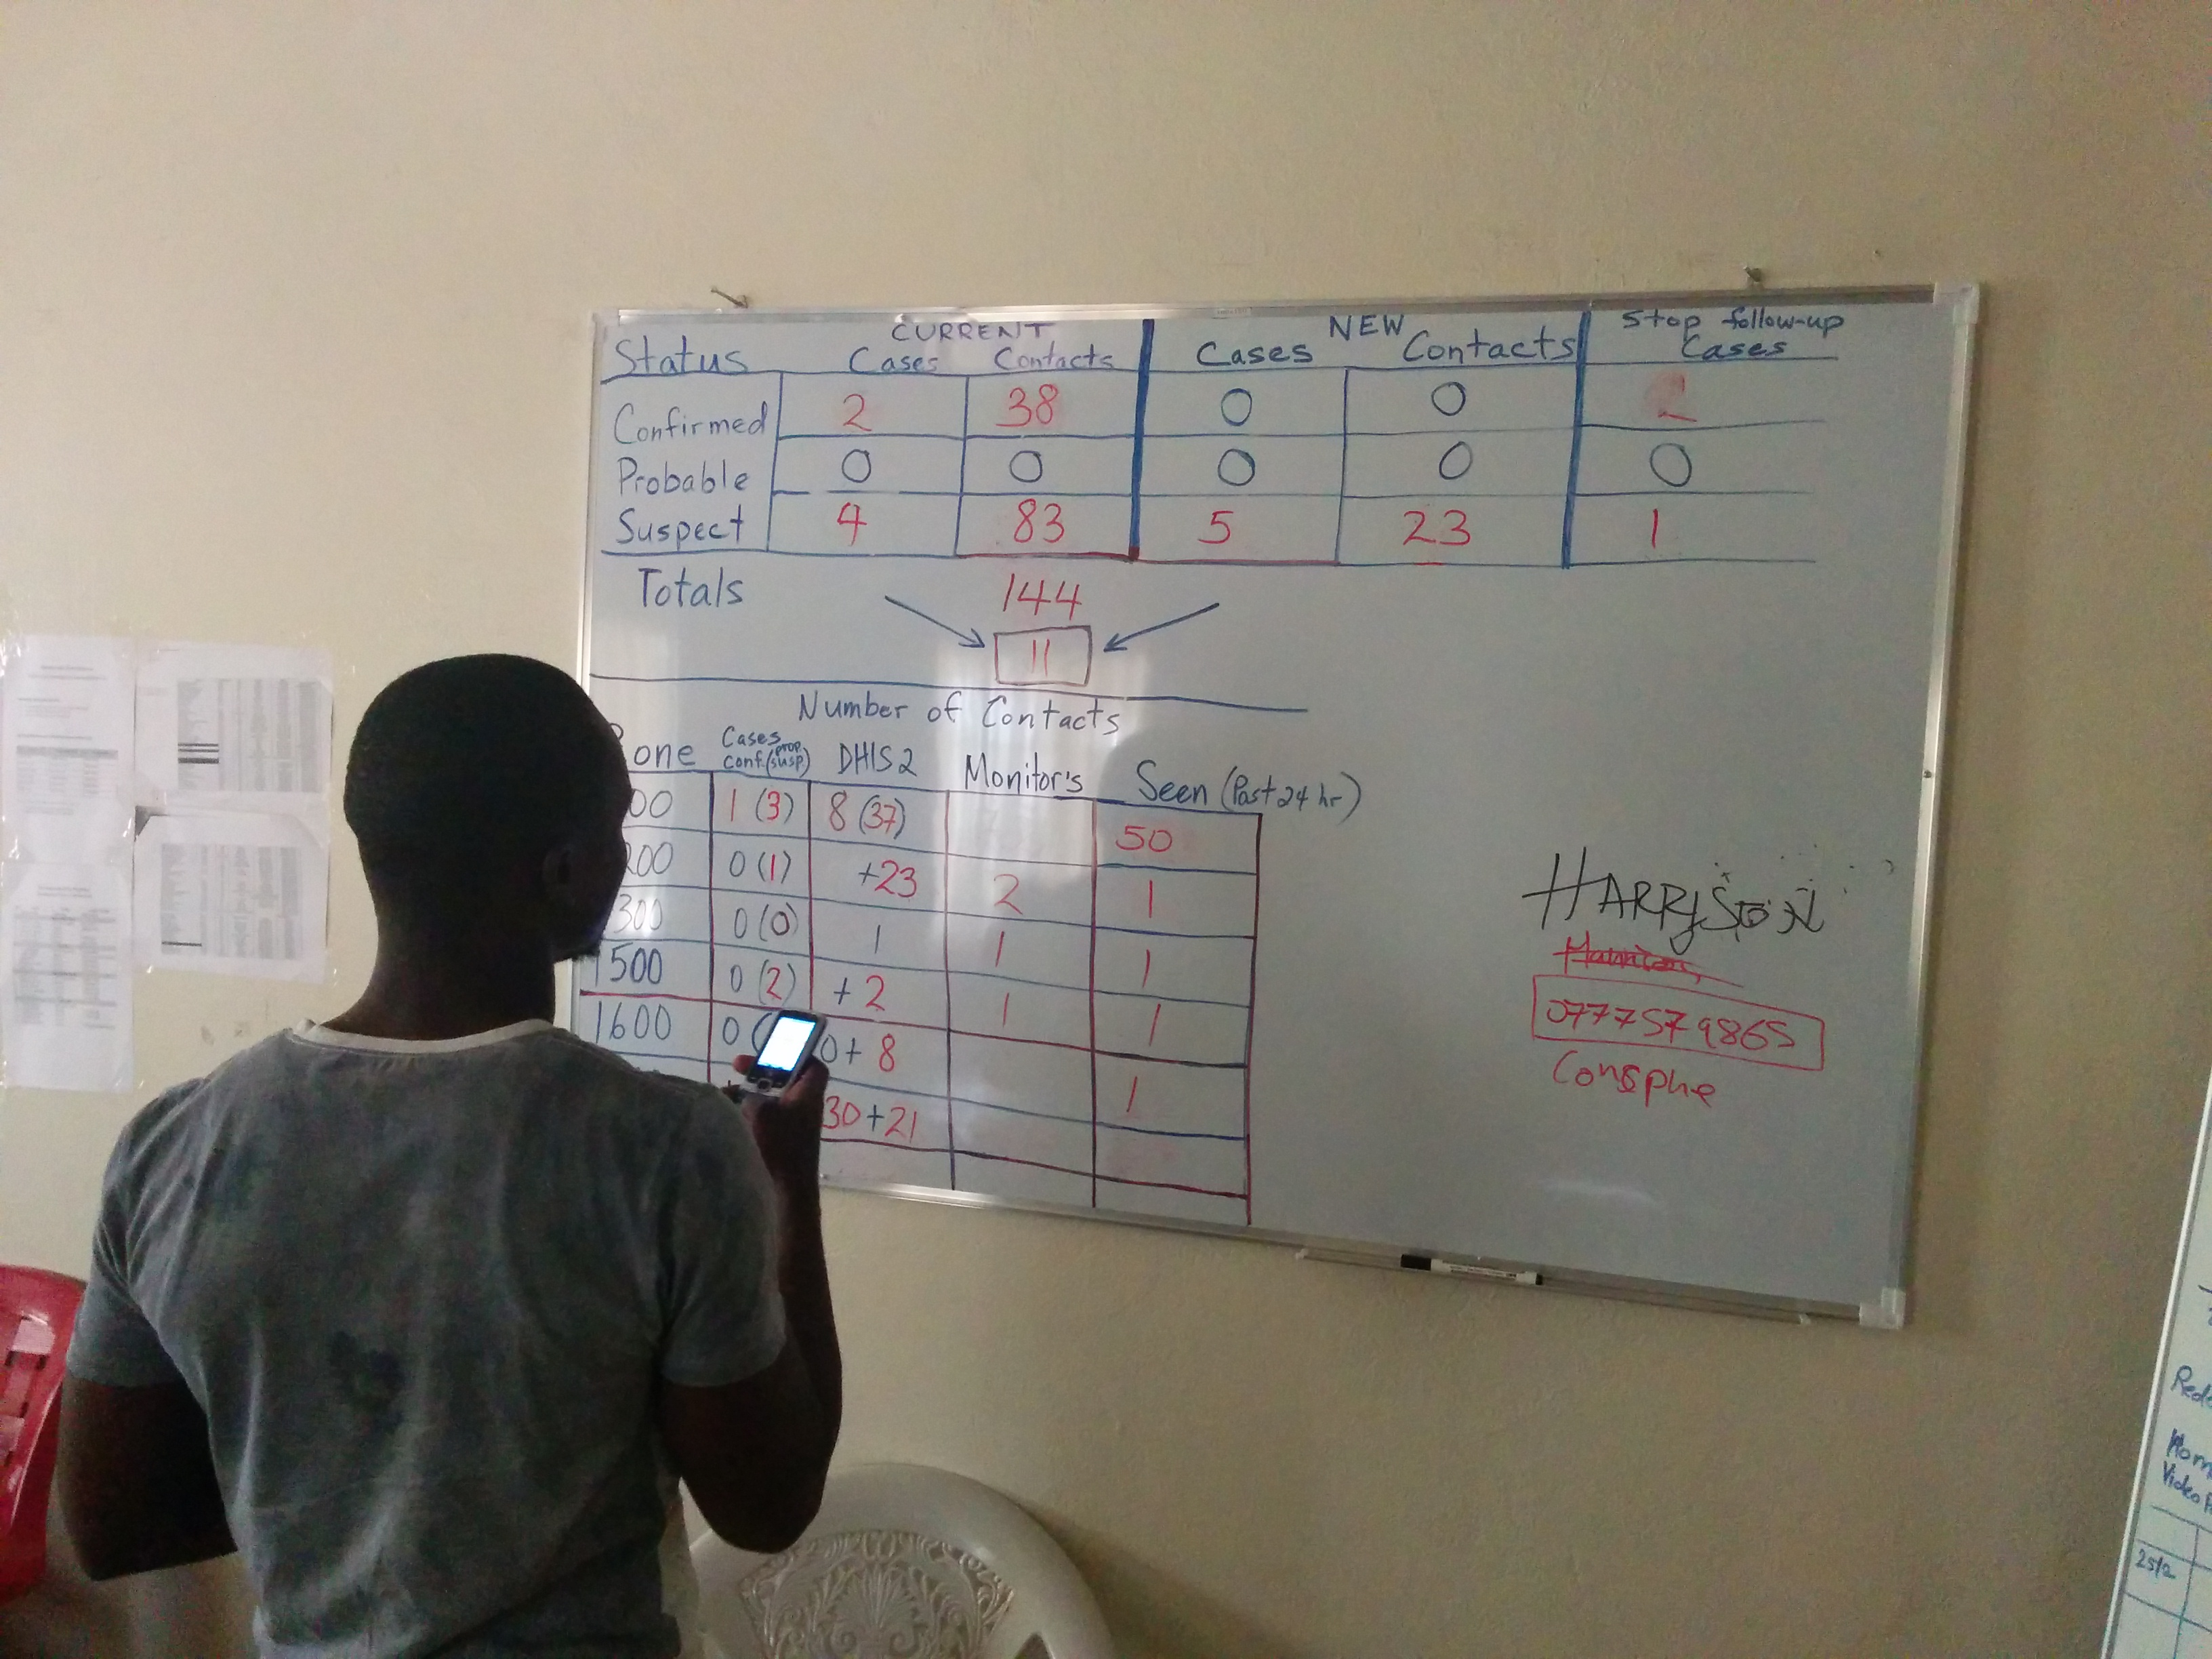 Vargo Degbe, from the Monrovia Ebola task force, tallies the day's case data